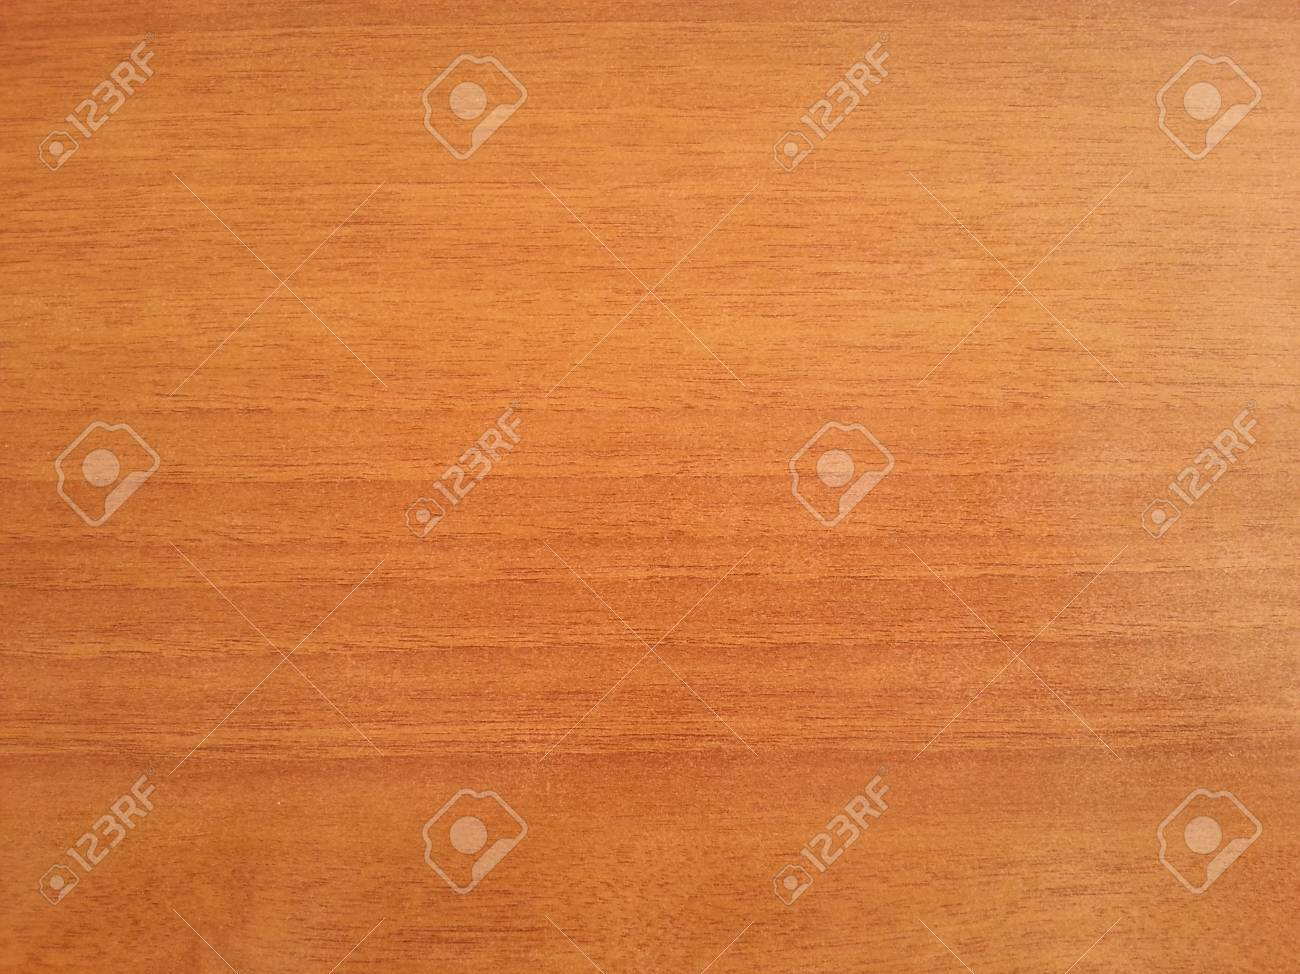 Wood texture background - 39993763